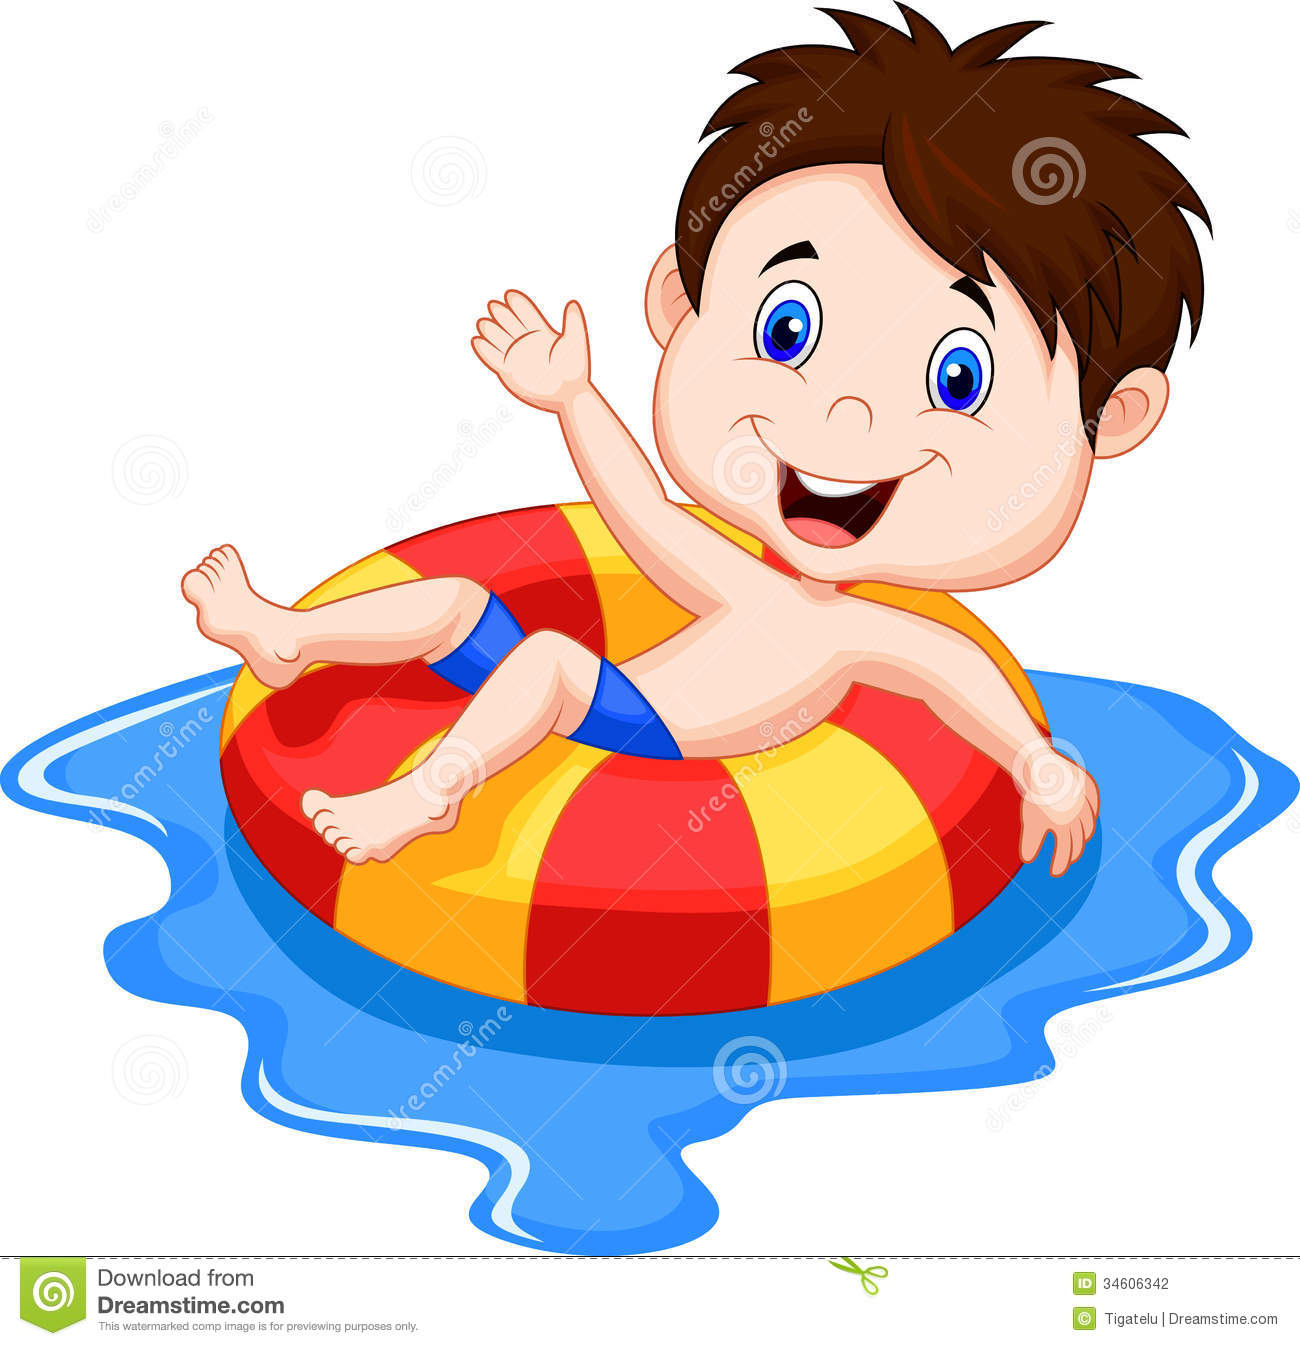 Floating clipart water safety Panda kids%20swimming%20animated Pool Free Clipart